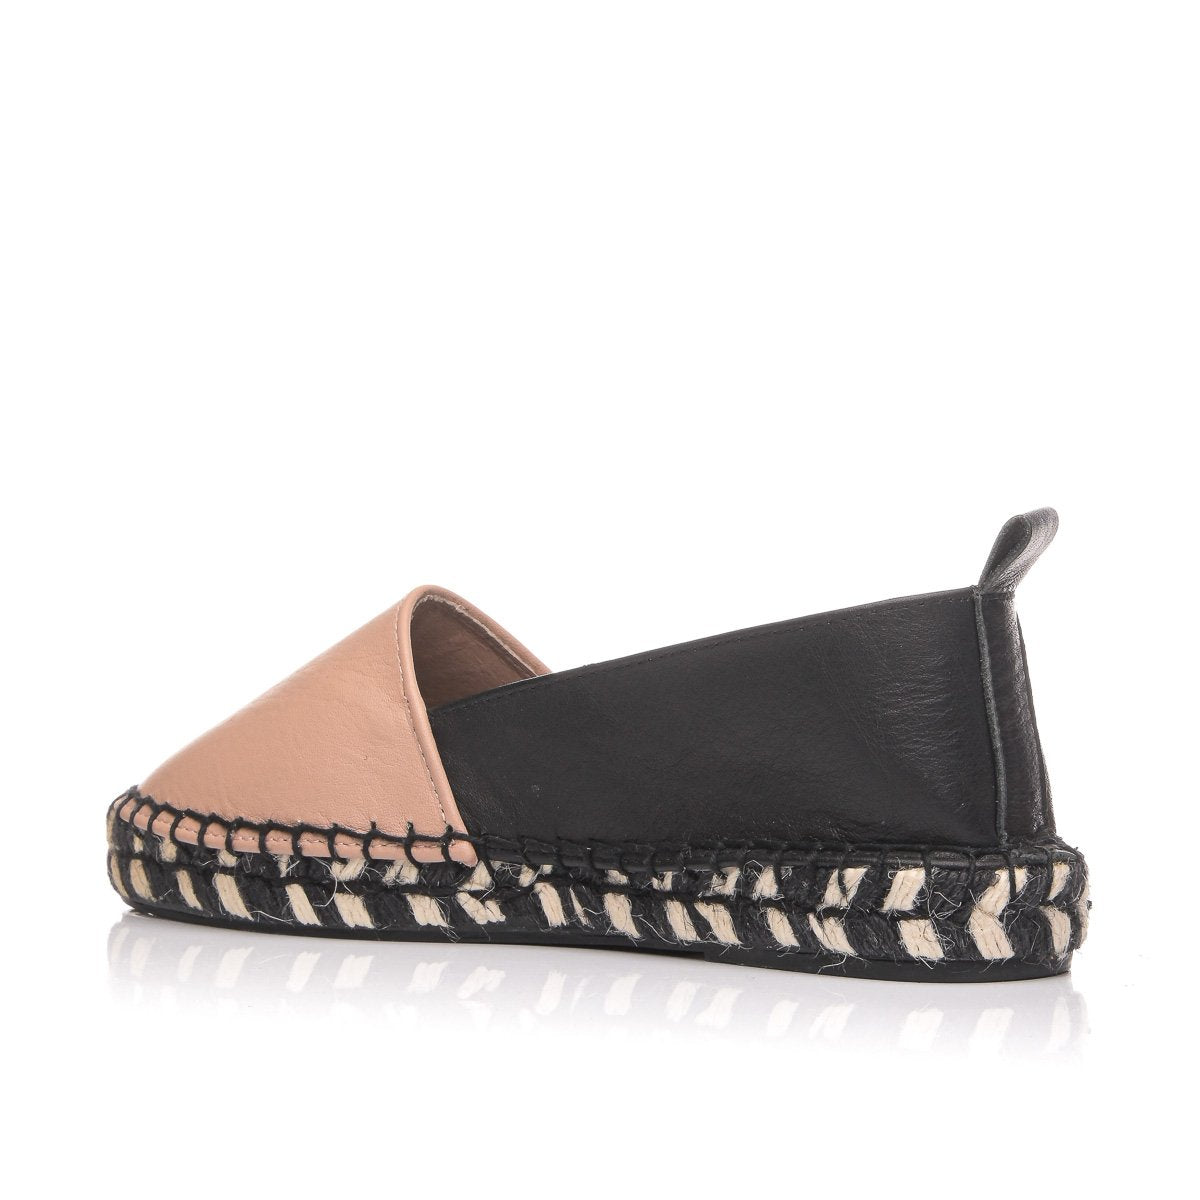 CLARA DURAN ESPADRILLES LEATHER MULTI